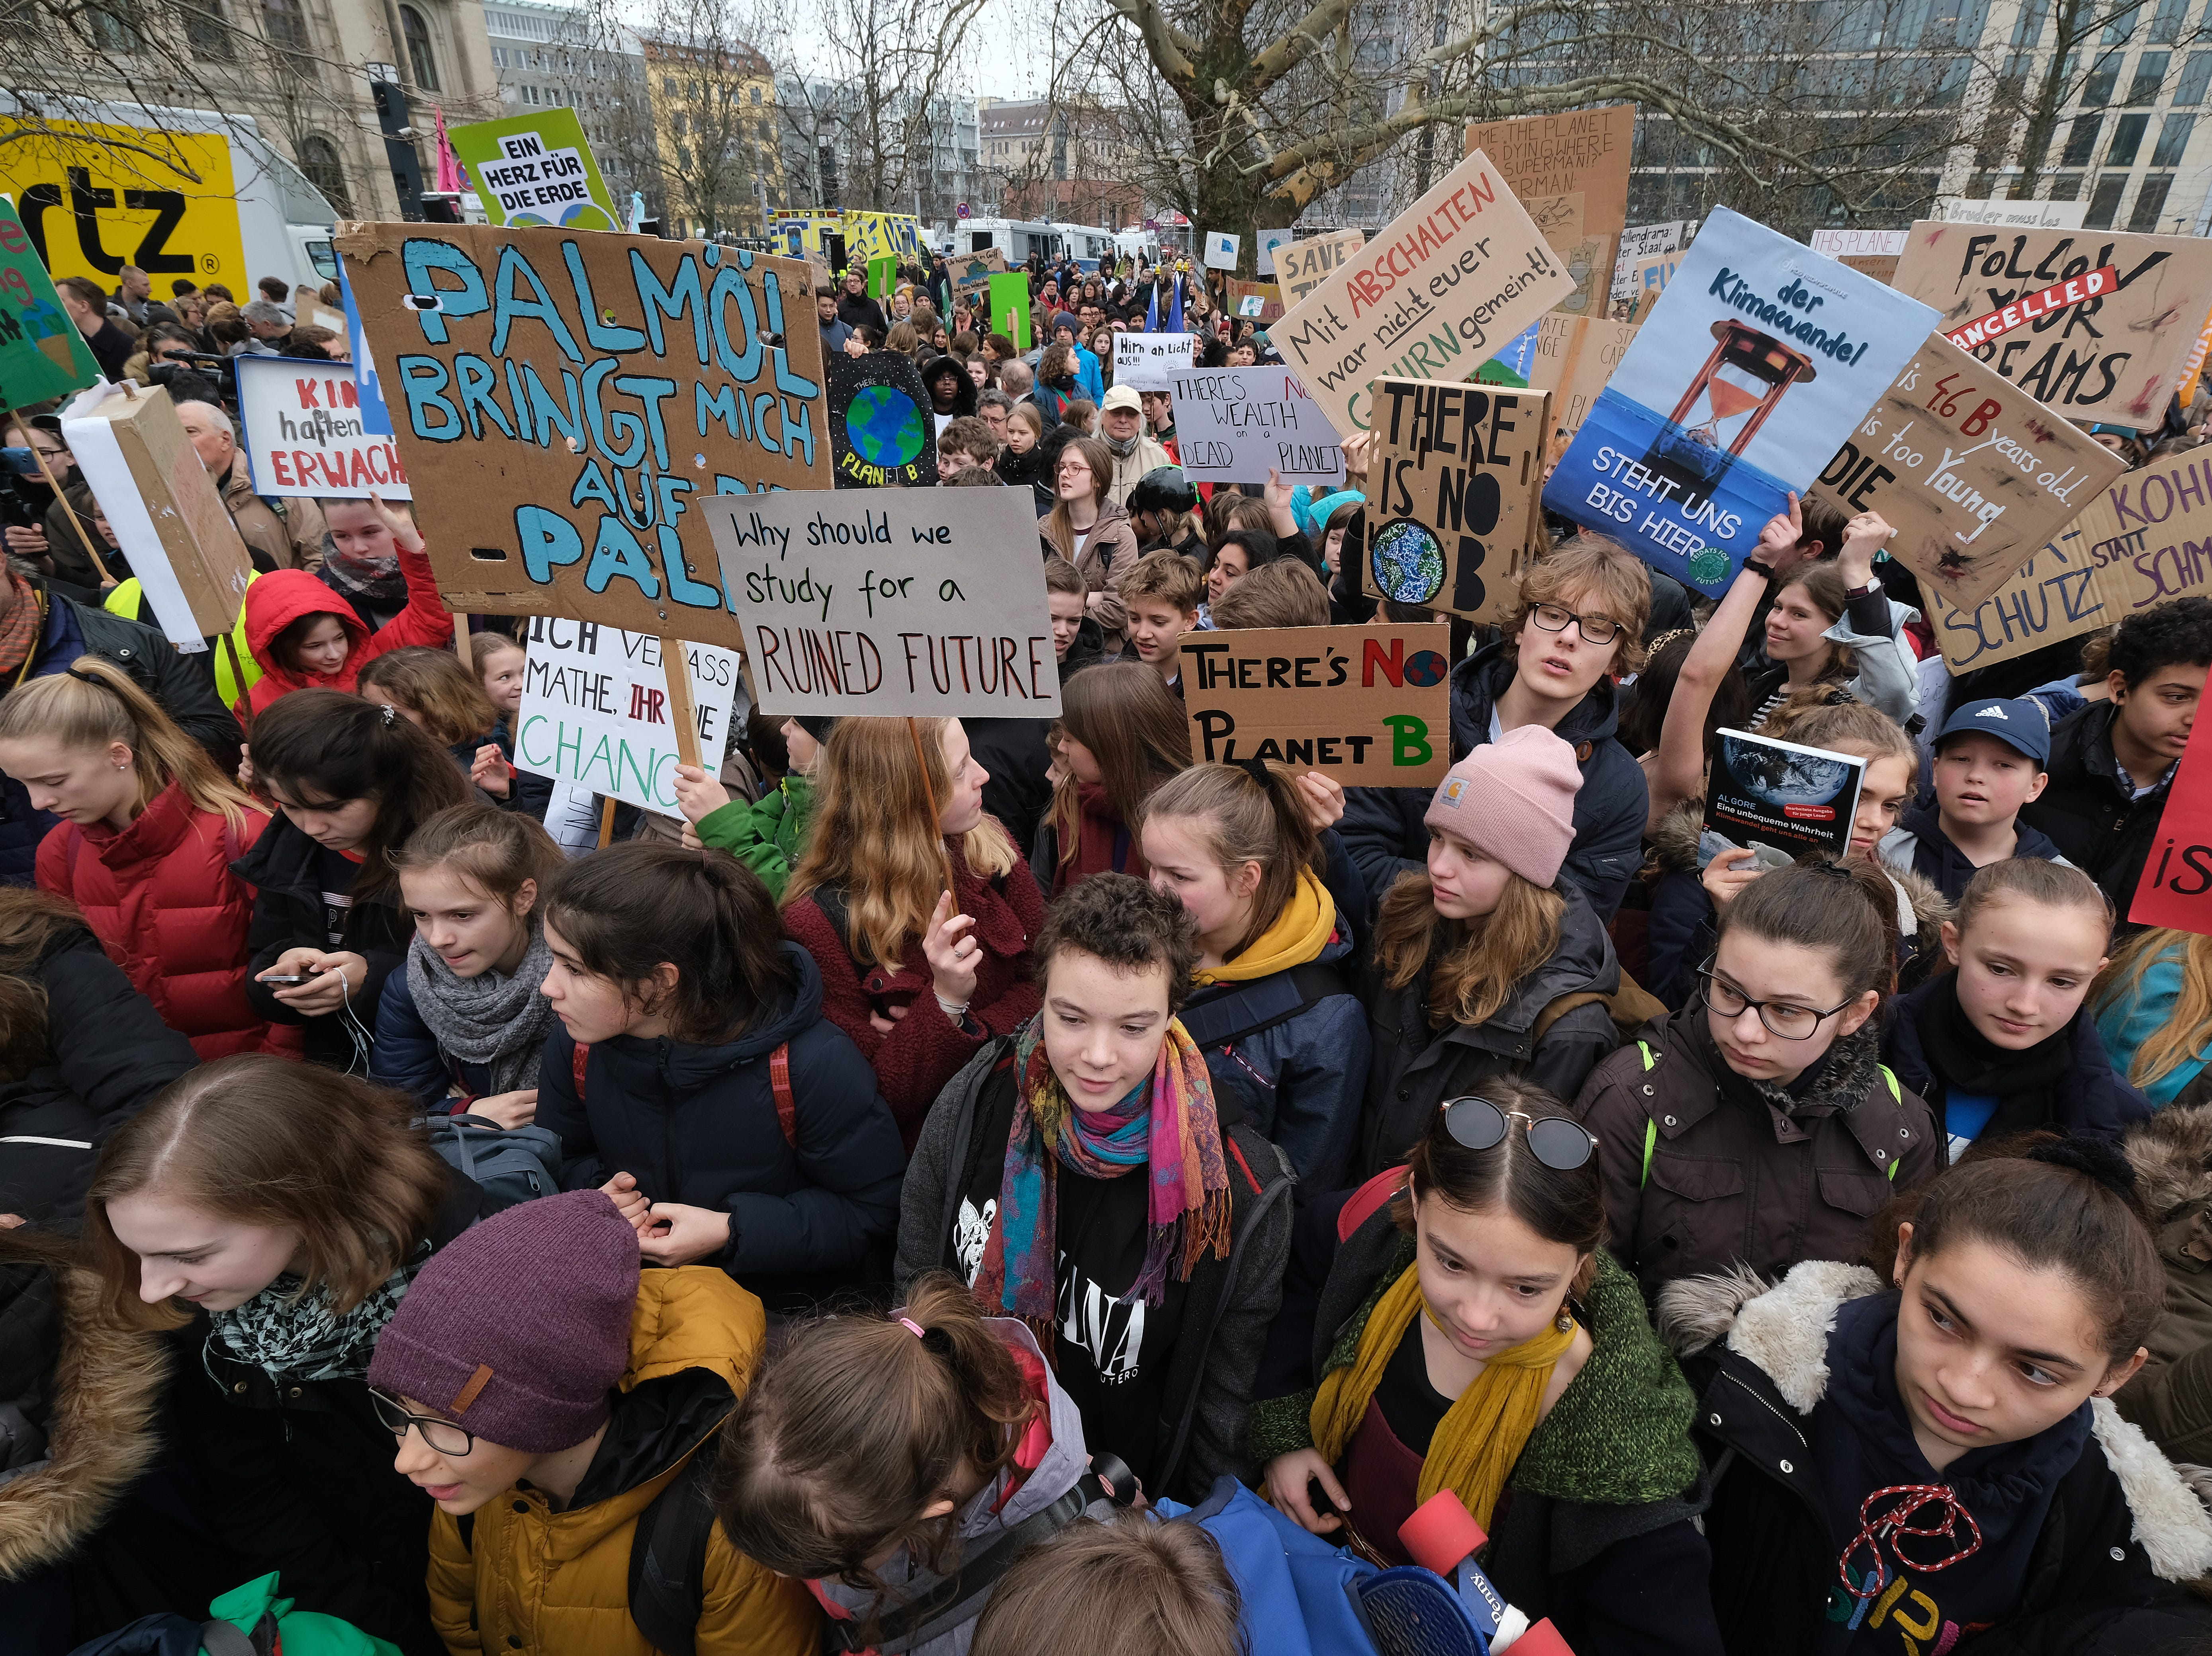 Striking students gather for a Fridays for Future protest march at Invalidenpark on March 29, 2019 in Berlin, Germany. Swedish climate activist Greta Thunberg took part in the ensuing march.